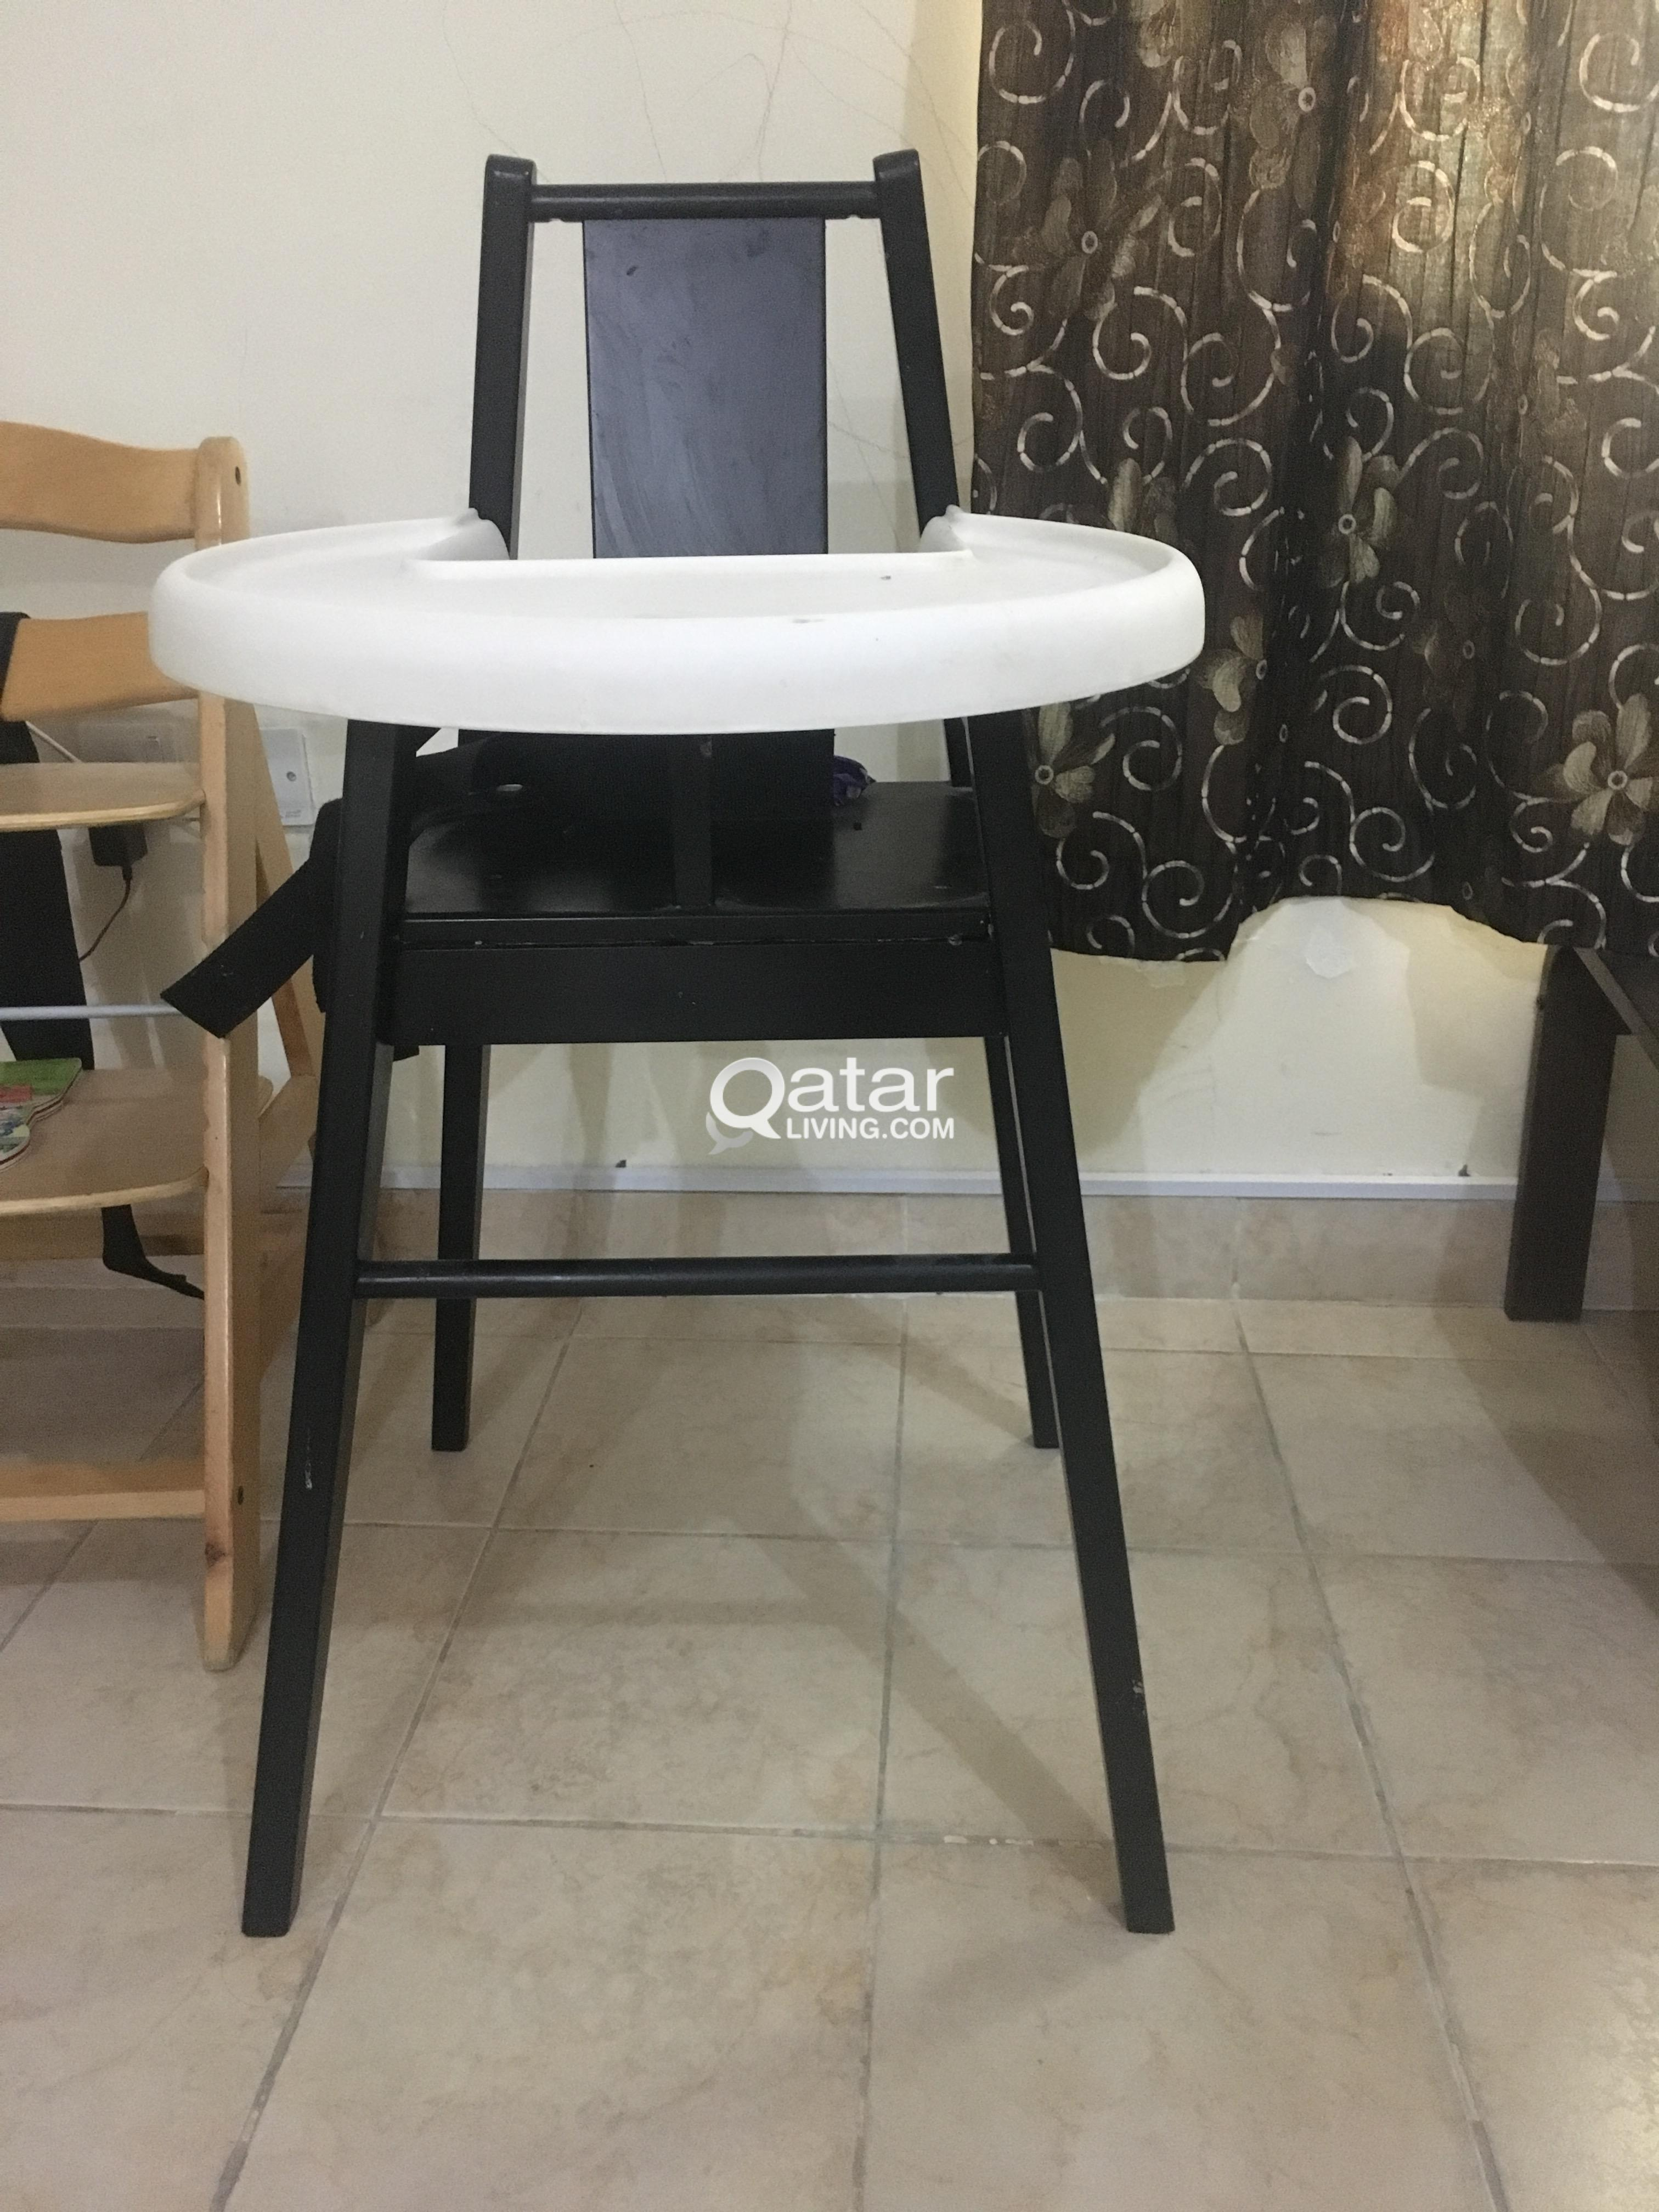 Wooden High Chair With Tray Qatar Living